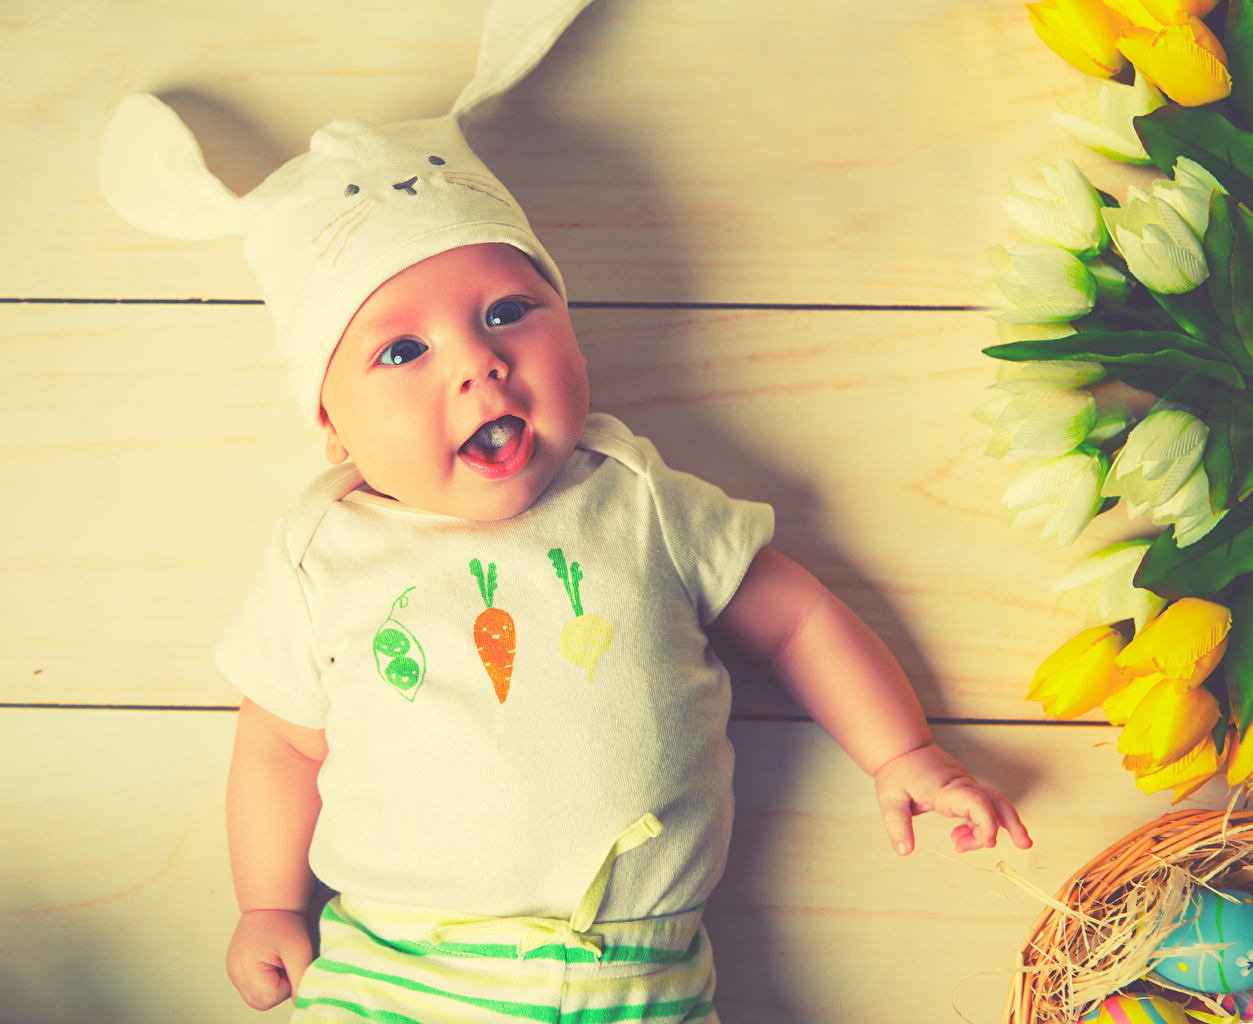 Pictures Easter Boys rabbit Infants Children Glance boards Baby Rabbits newborn child Staring Wood planks